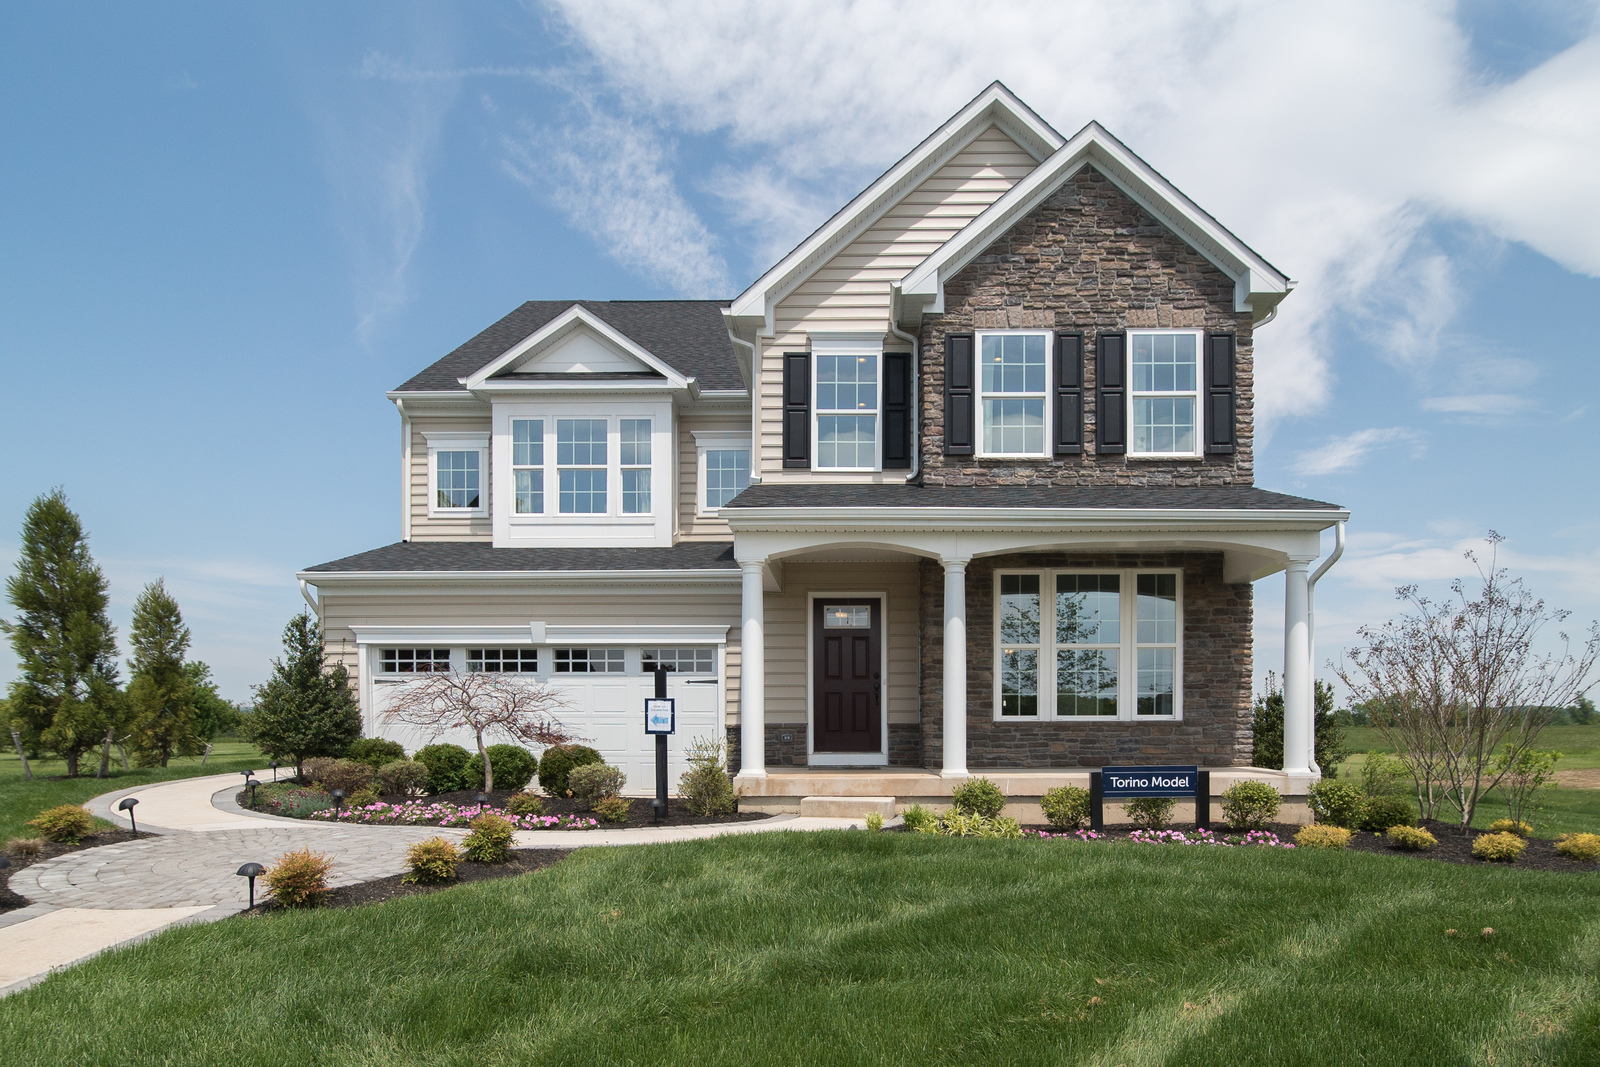 New Homes For Sale At Hoadly Manor In Manassas Va Within